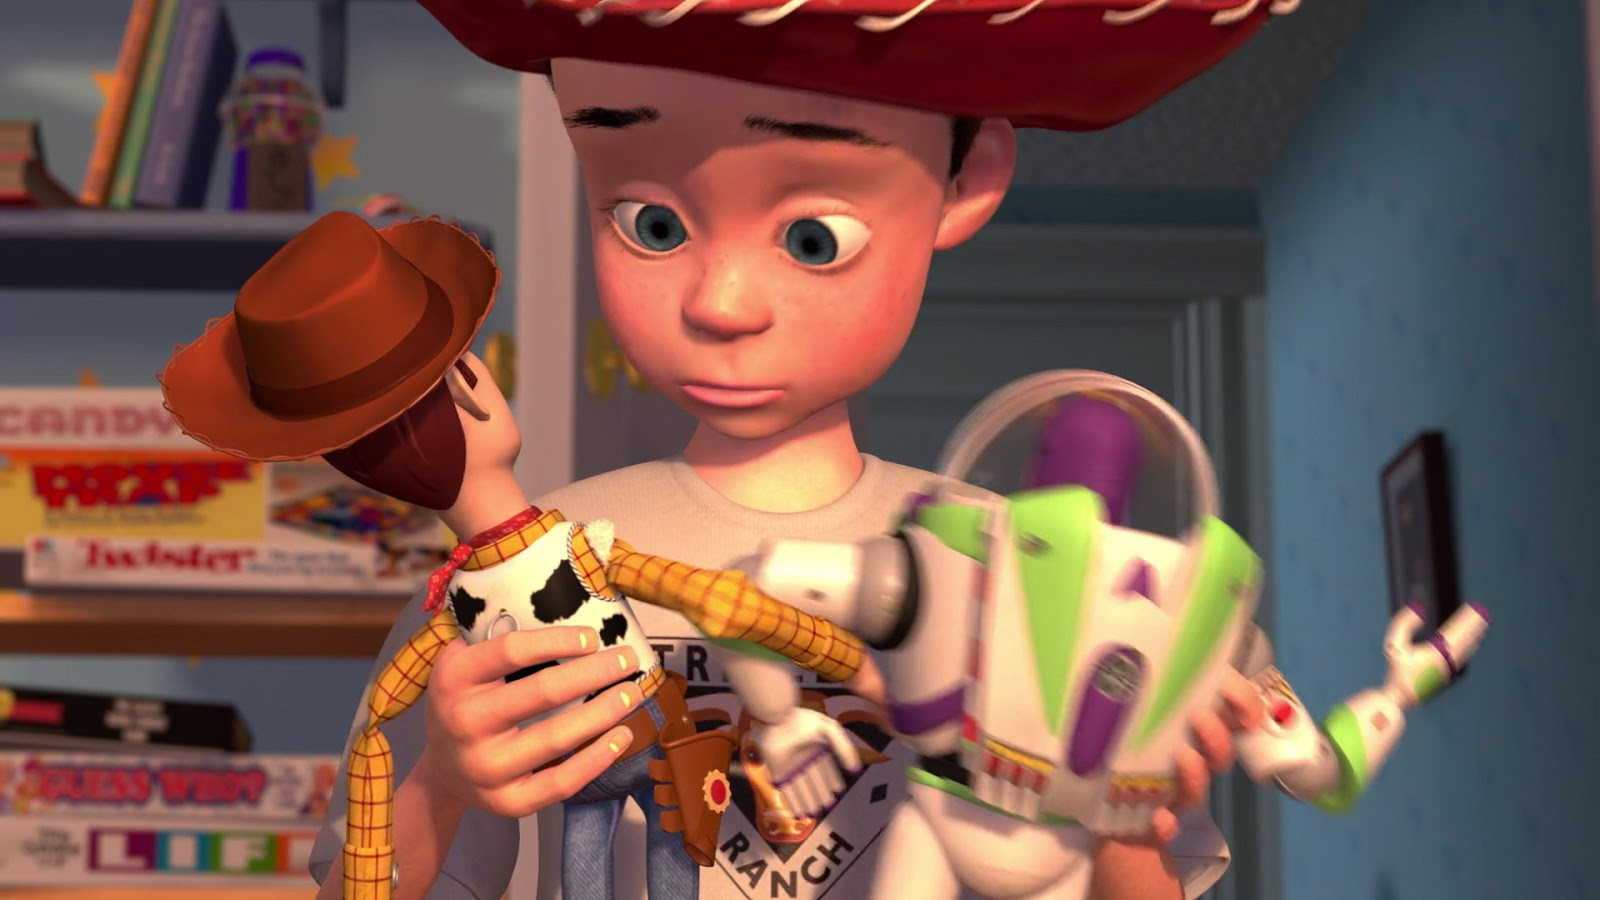 Disney Toy Story 4 Andy : A little lamp the pixar points closer look at toy